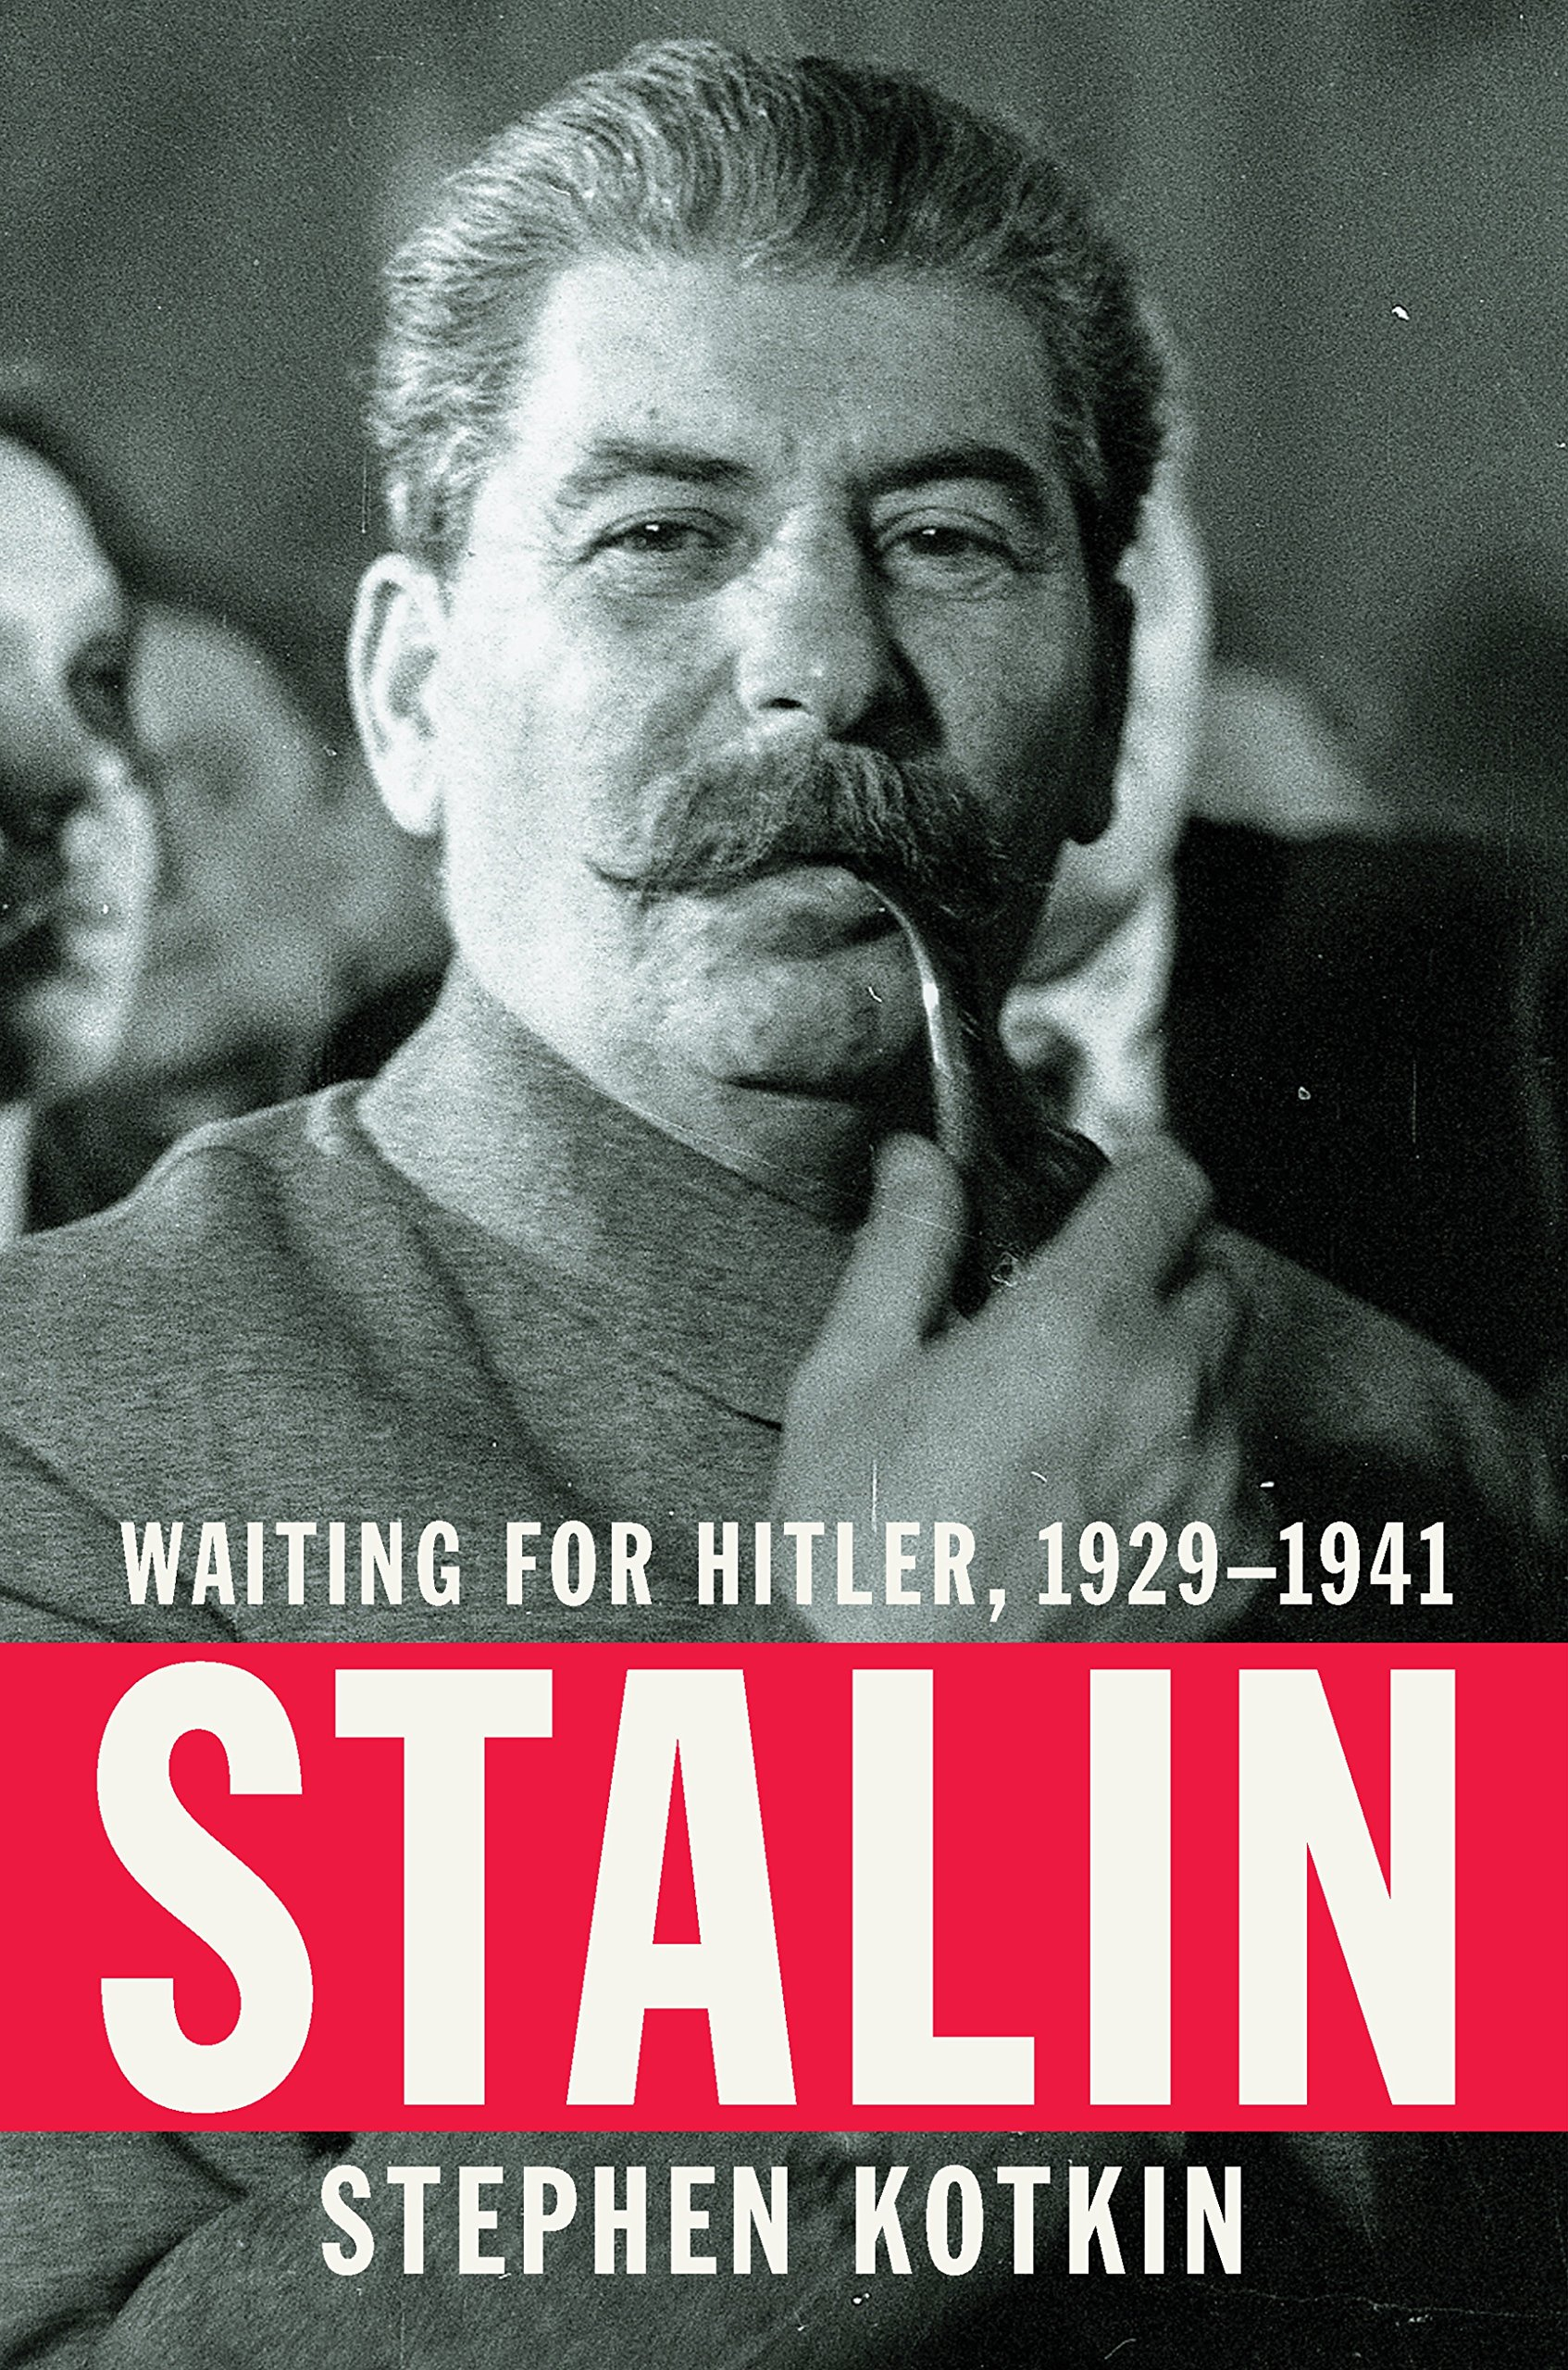 Stalins personality cult, or Alchemy of absolute power